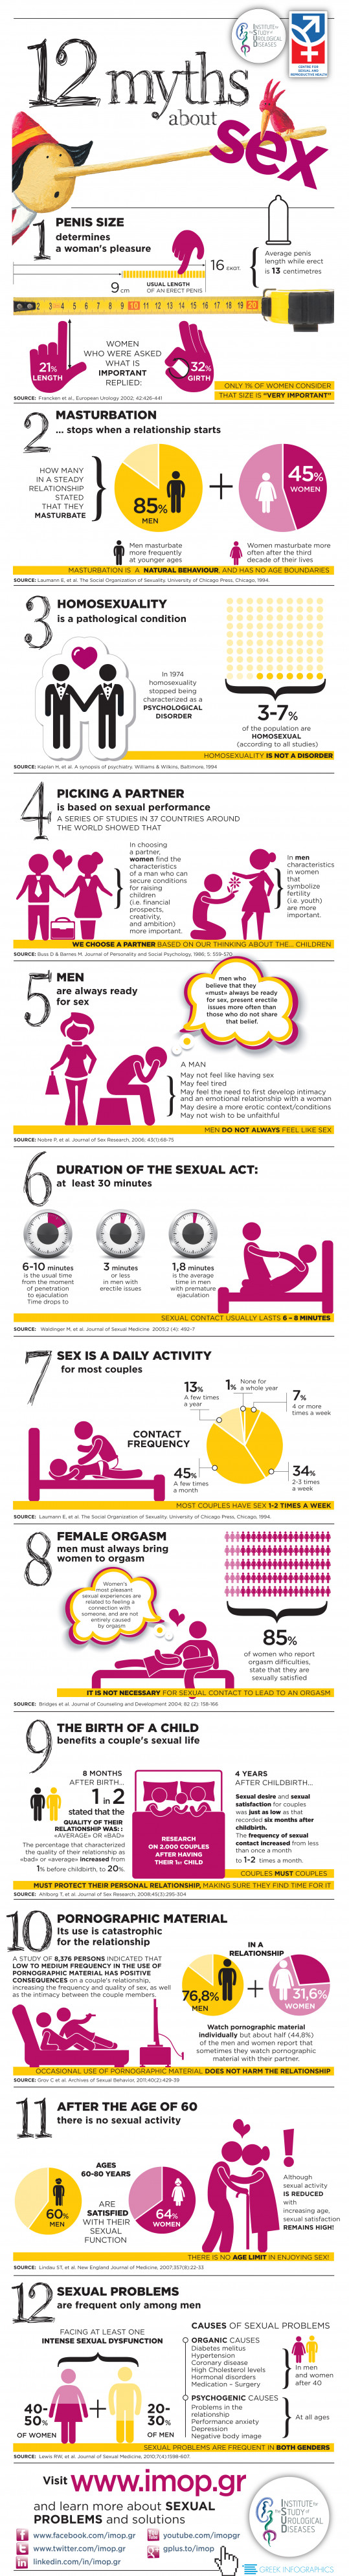 12 Myths about Sex